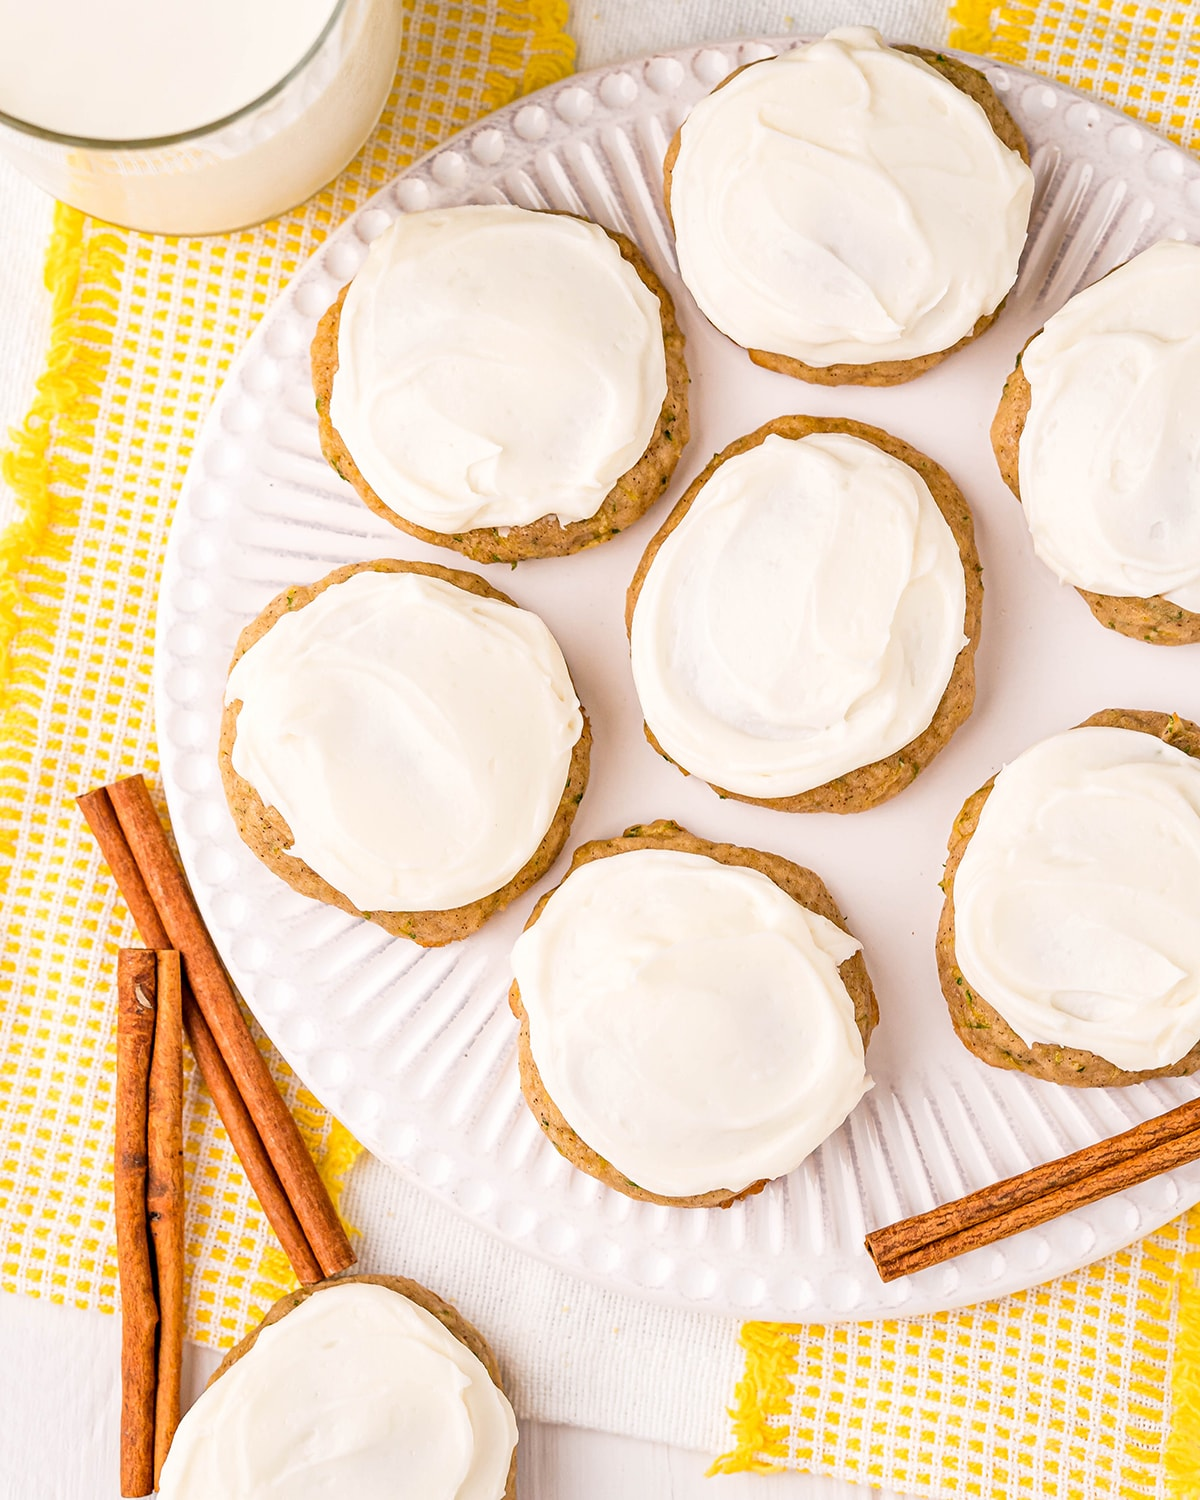 An overhead shot of a plate of cookies, topped with a white cream cheese frosting.